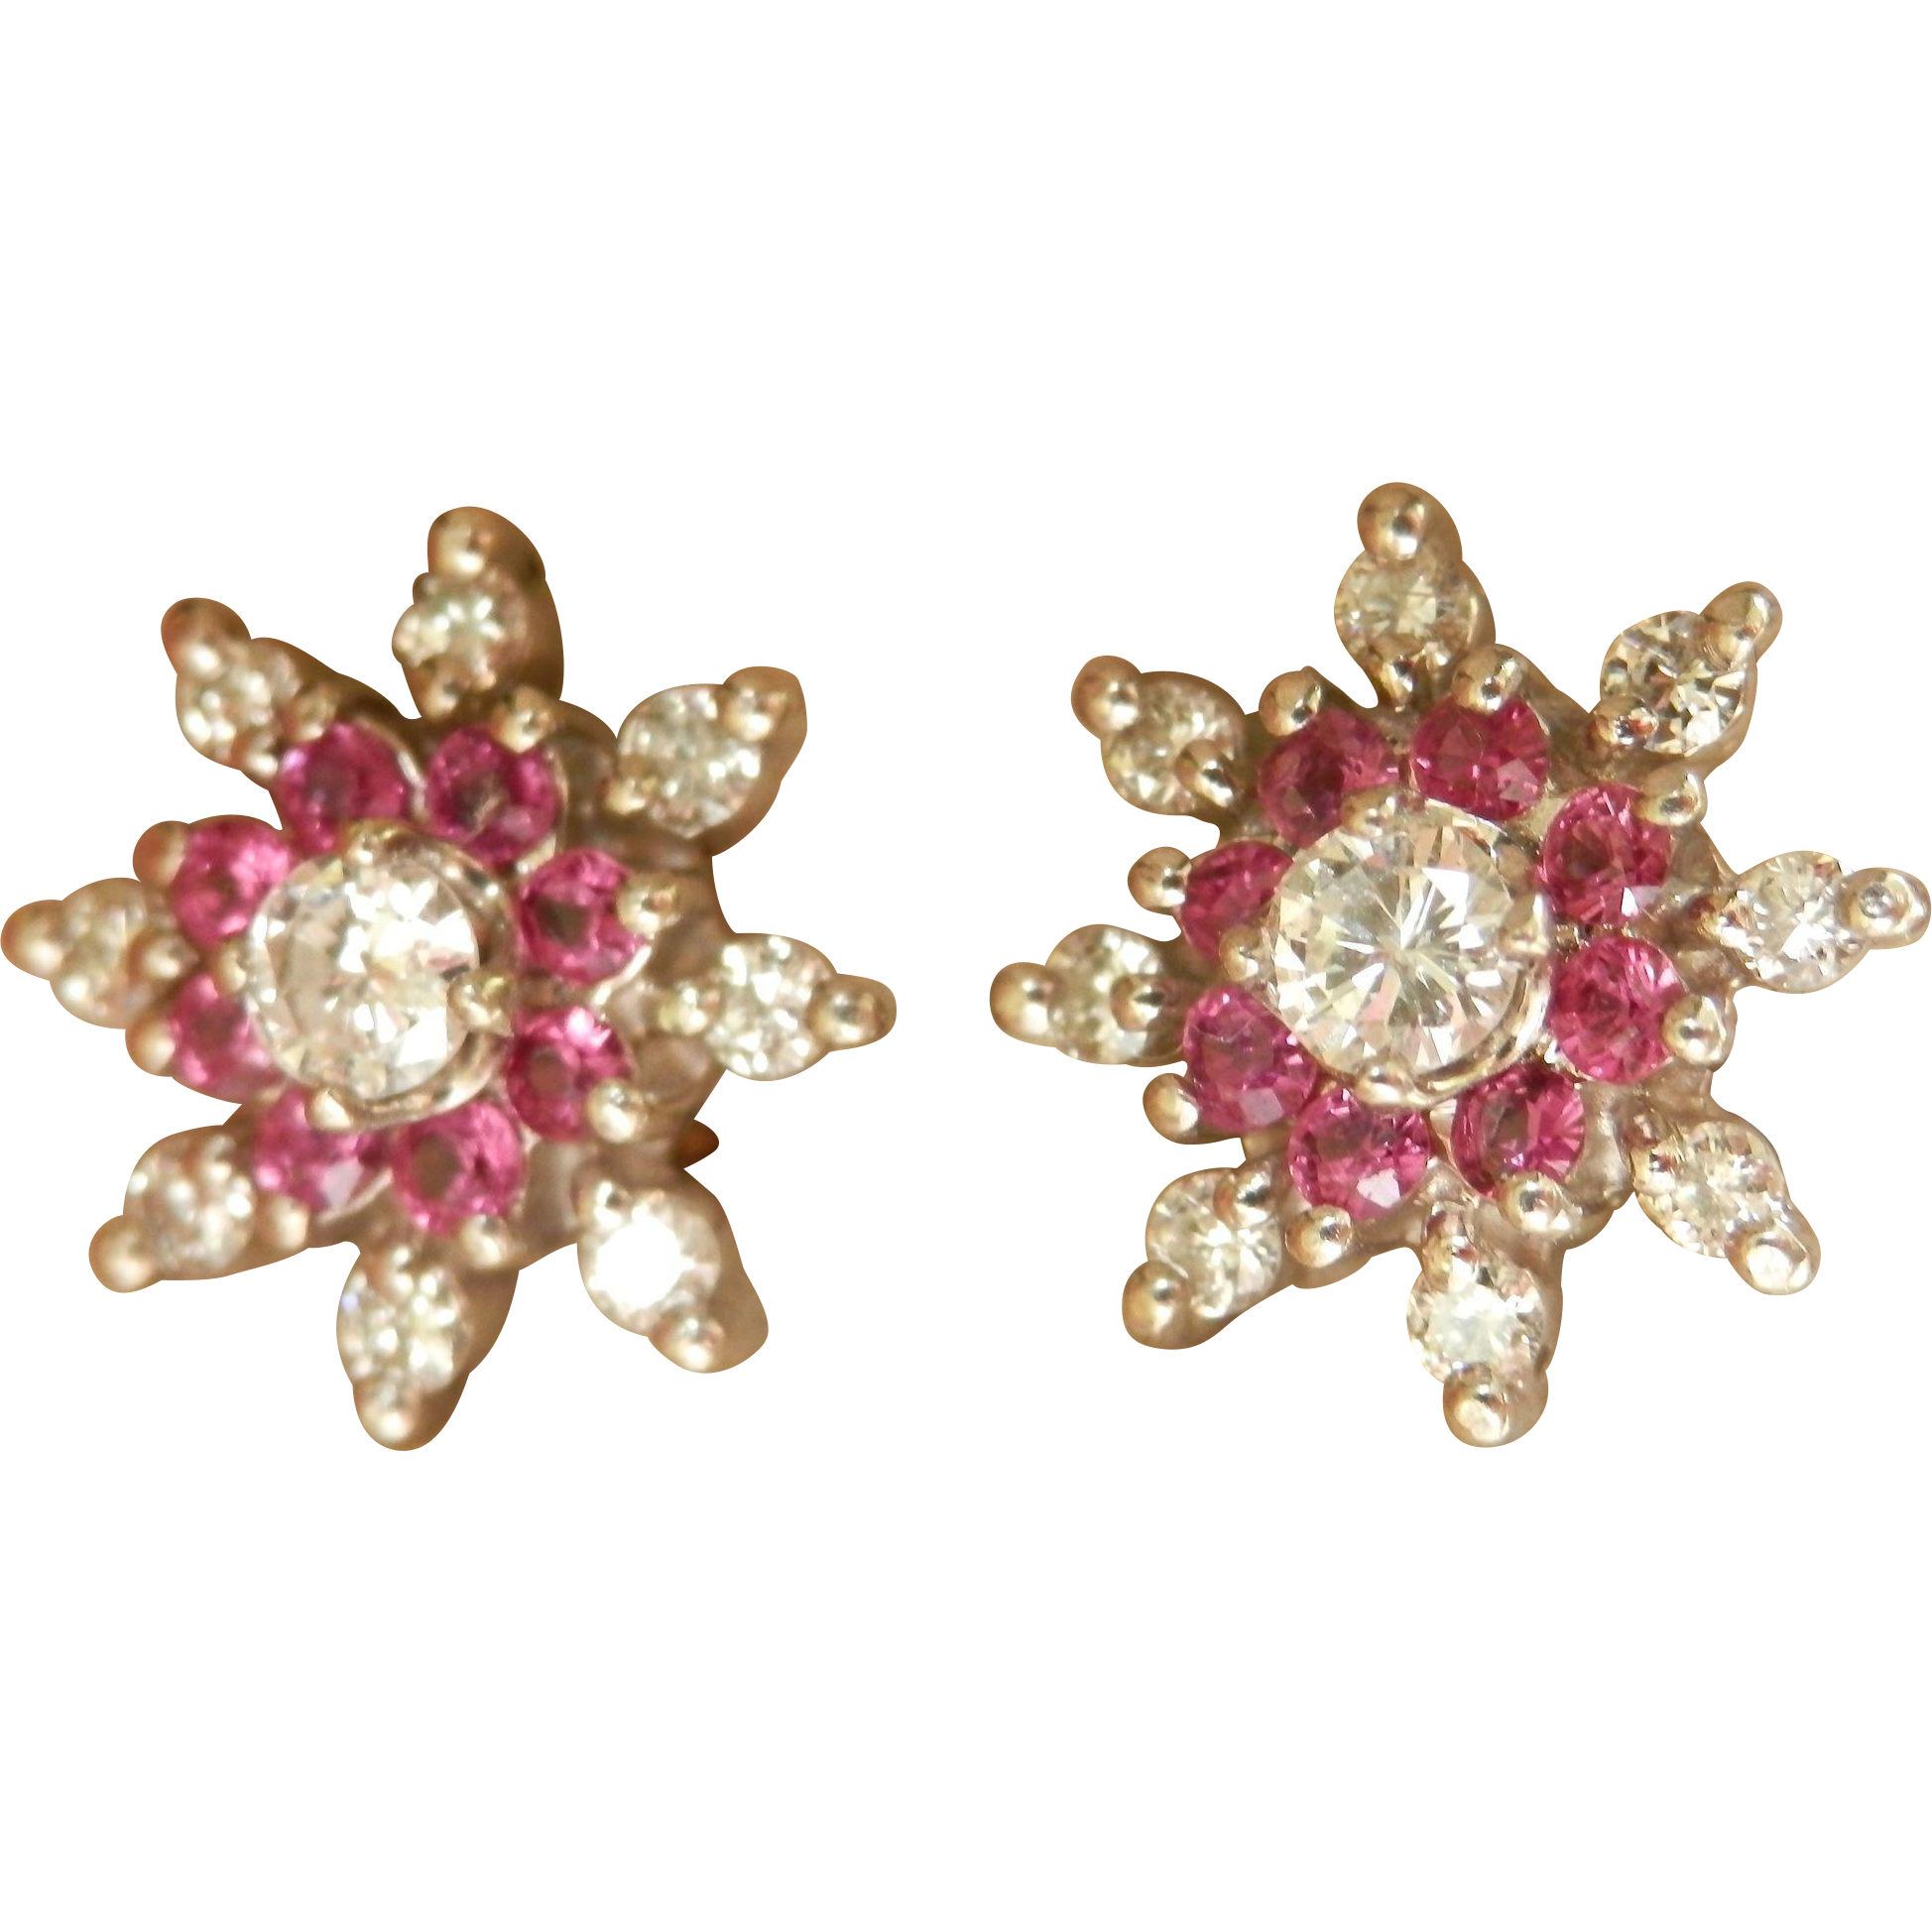 Stunning 14K W/Gold Ruby Diamond Floral Earrings Retro!